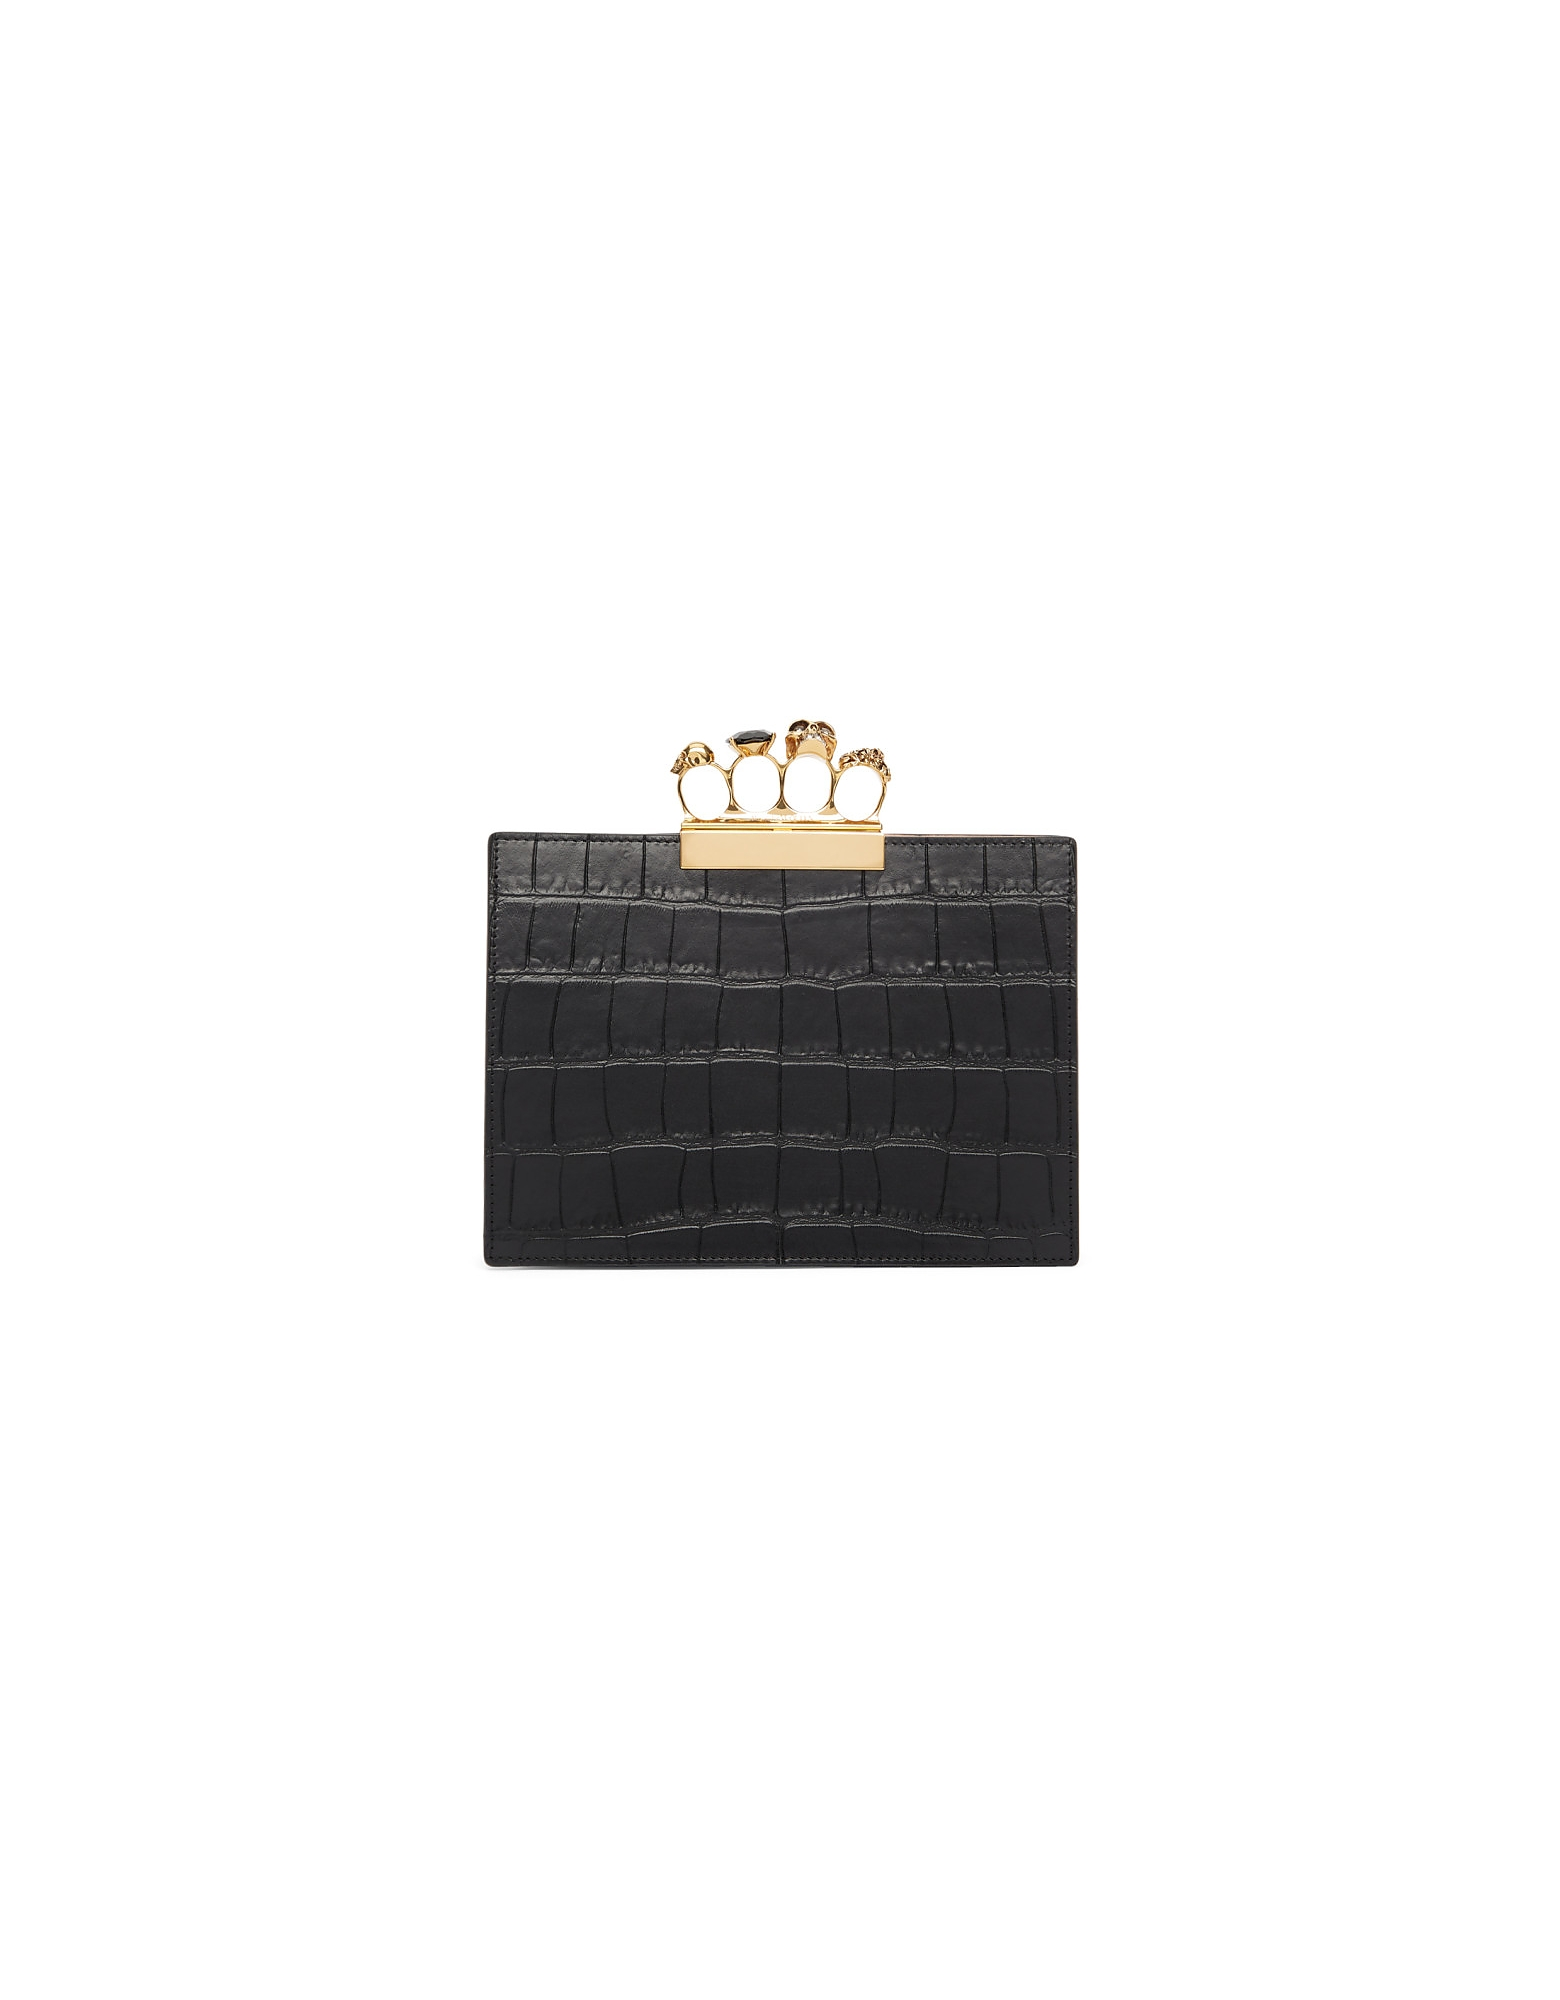 Alexander McQueen Designer Handbags, Black Croc Small Four Ring Clutch